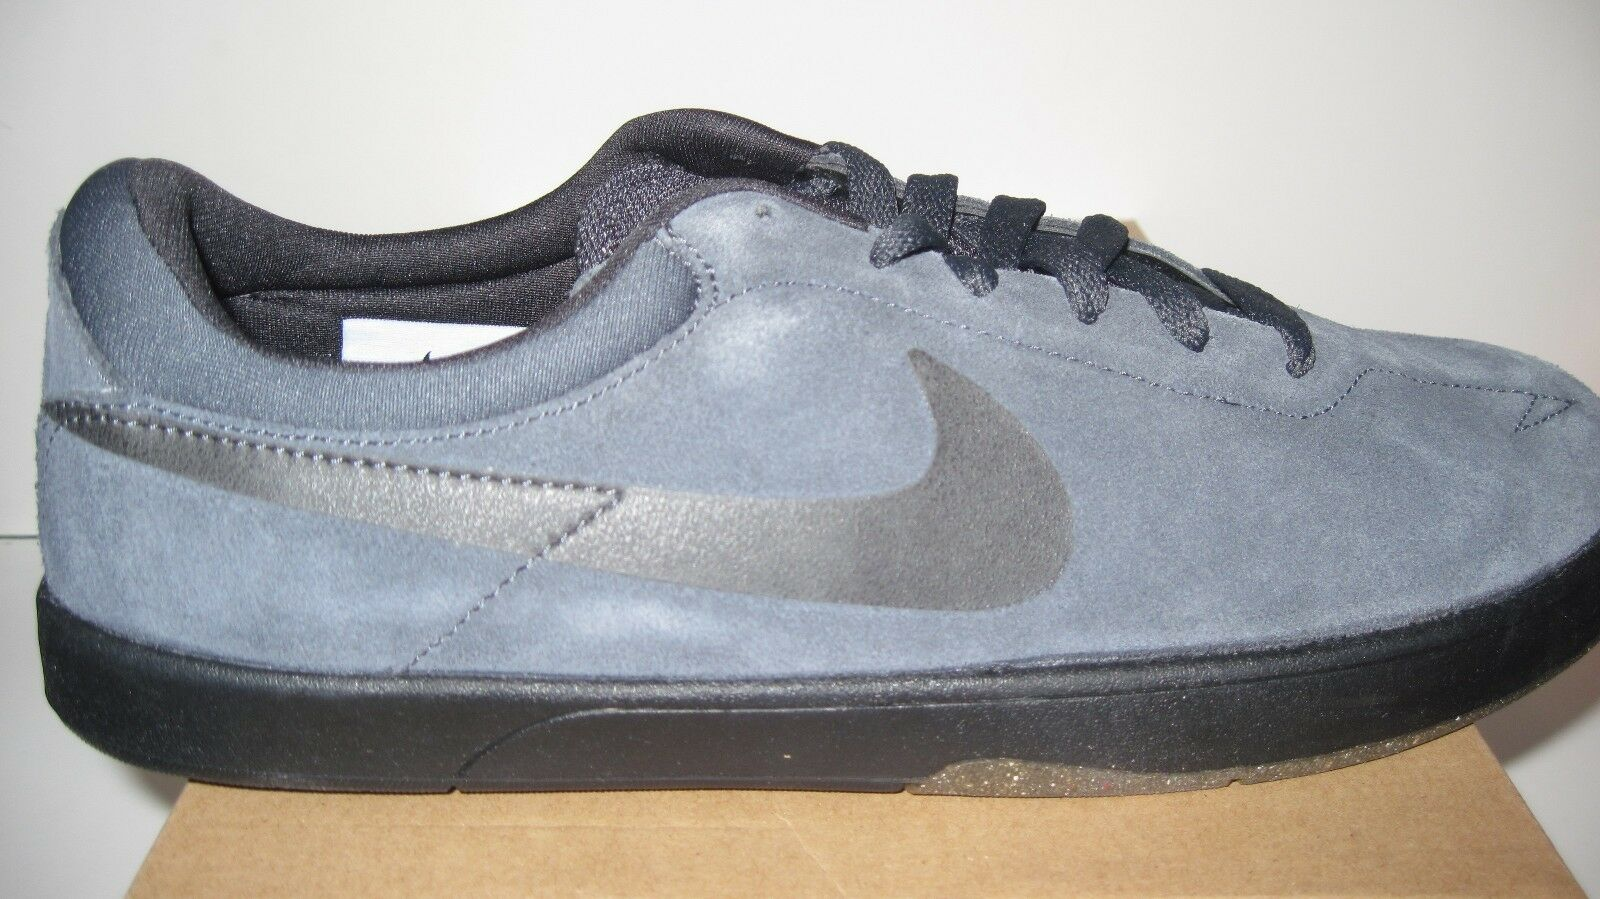 NIKE ERIC KOSTON Size 8.5 Anthracite Black-Buff Gold   New in Box Great Gift